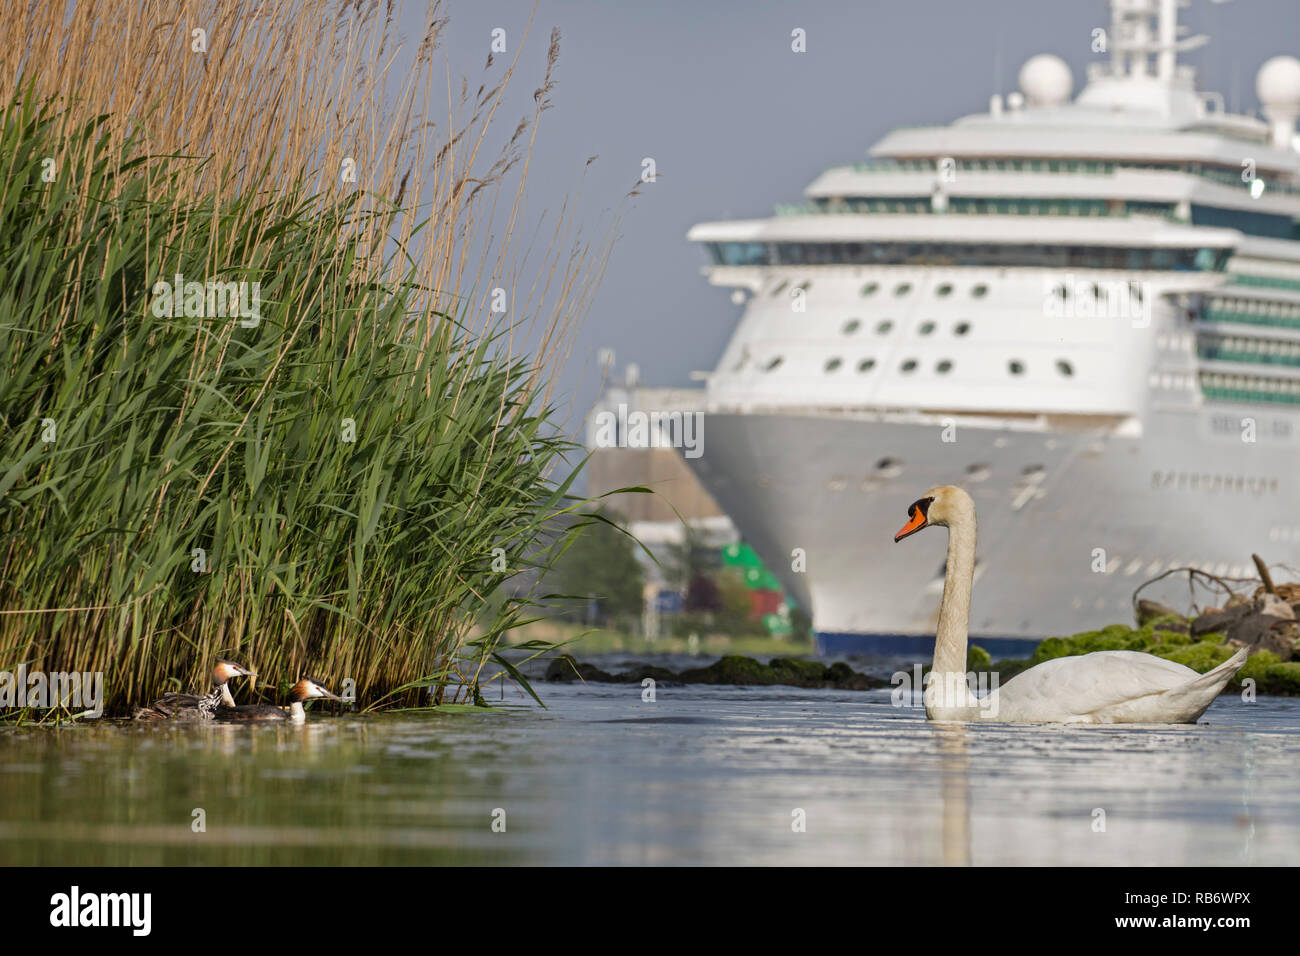 Cruise ship Serenade of the Sea's in North Sea Canal. Mute swan (Cygnus color) and Great crested grebes (Podiceps cristatus). Amsterdam, The Netherlan - Stock Image